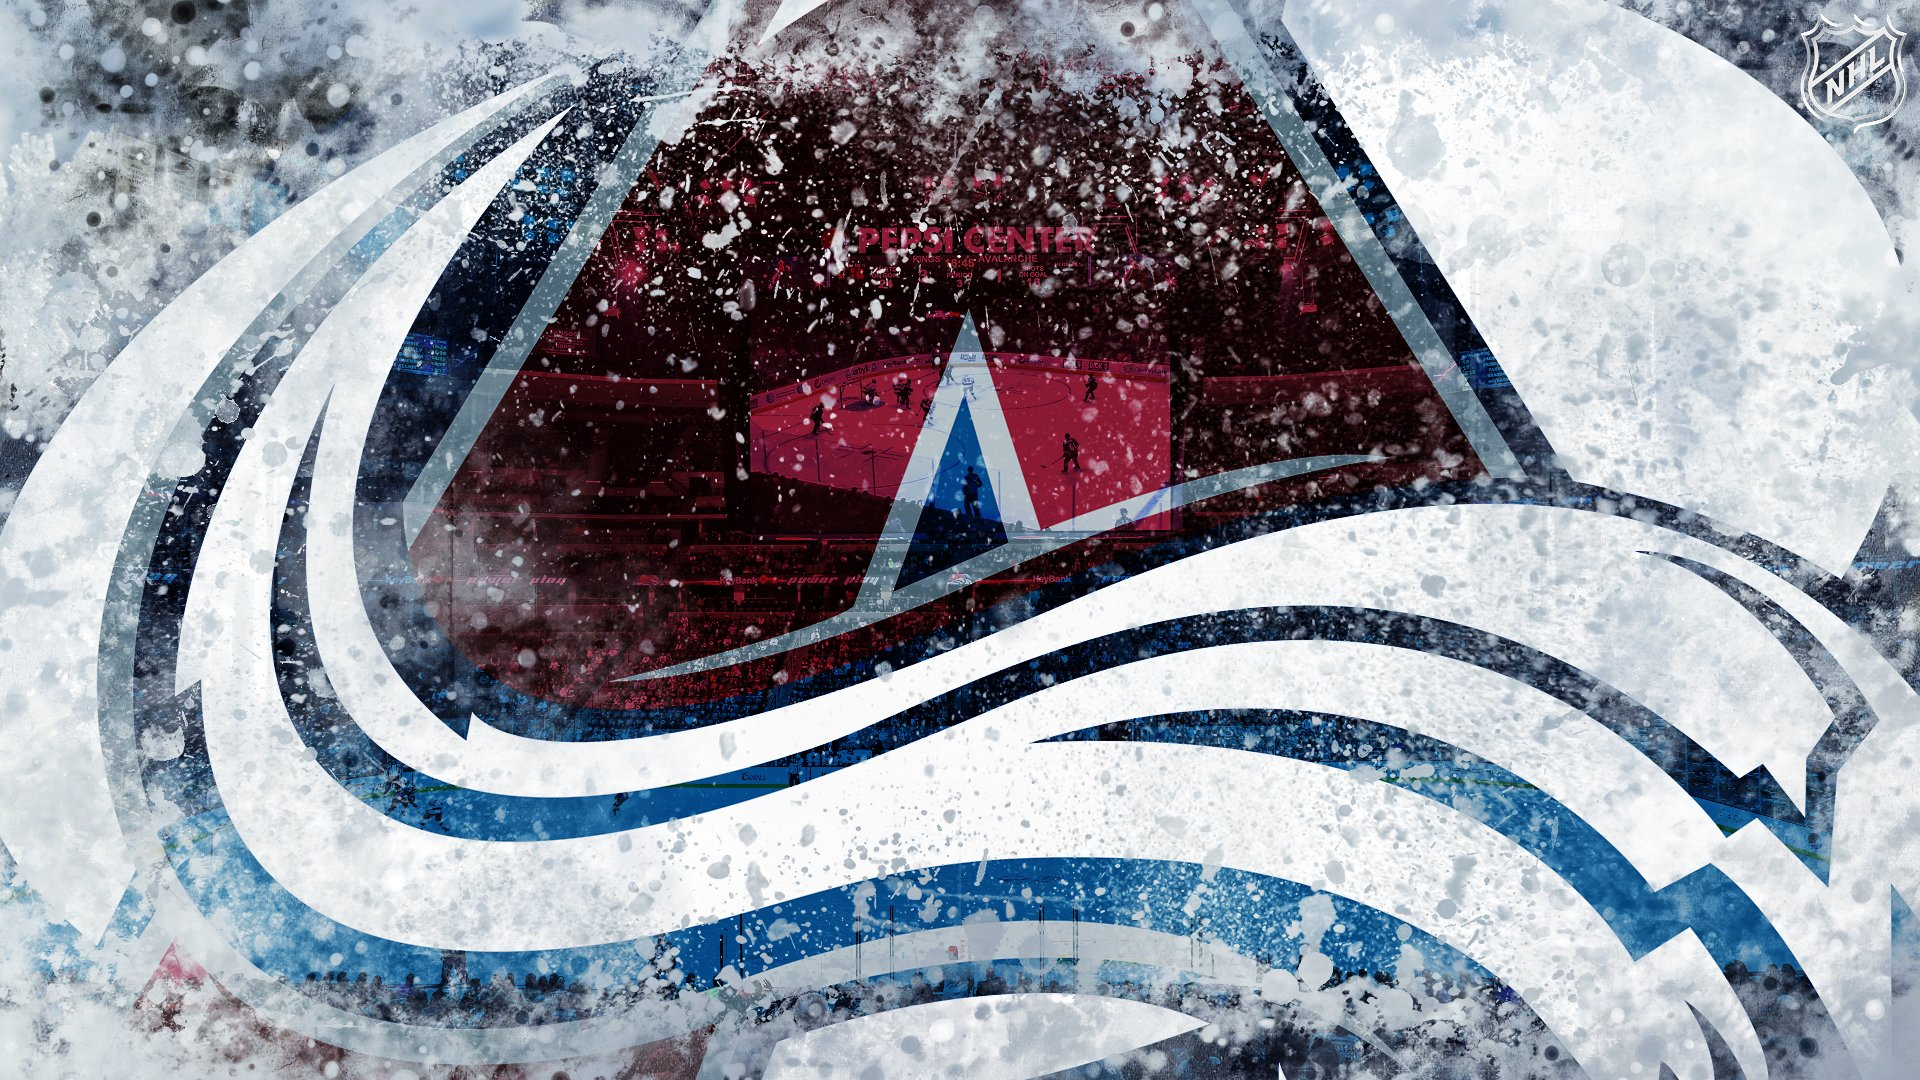 1920x1080 - Colorado Avalanche Wallpapers 24